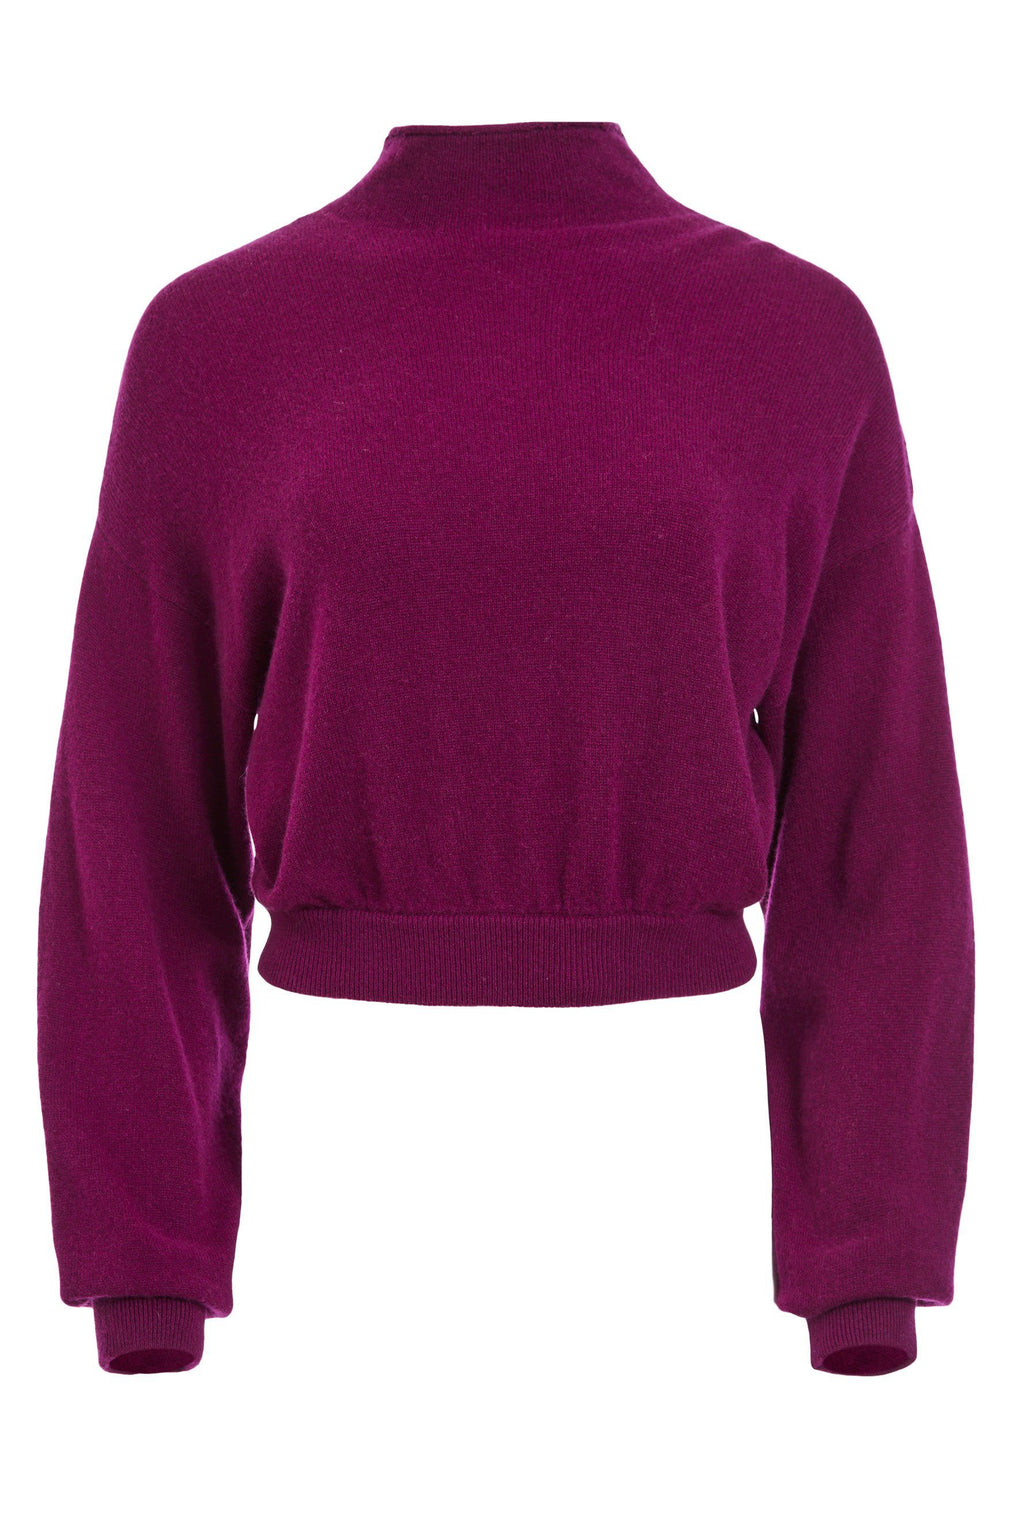 ALICE + OLIVIA | Caprice Drop Shoulder Sweater - Boysenberry